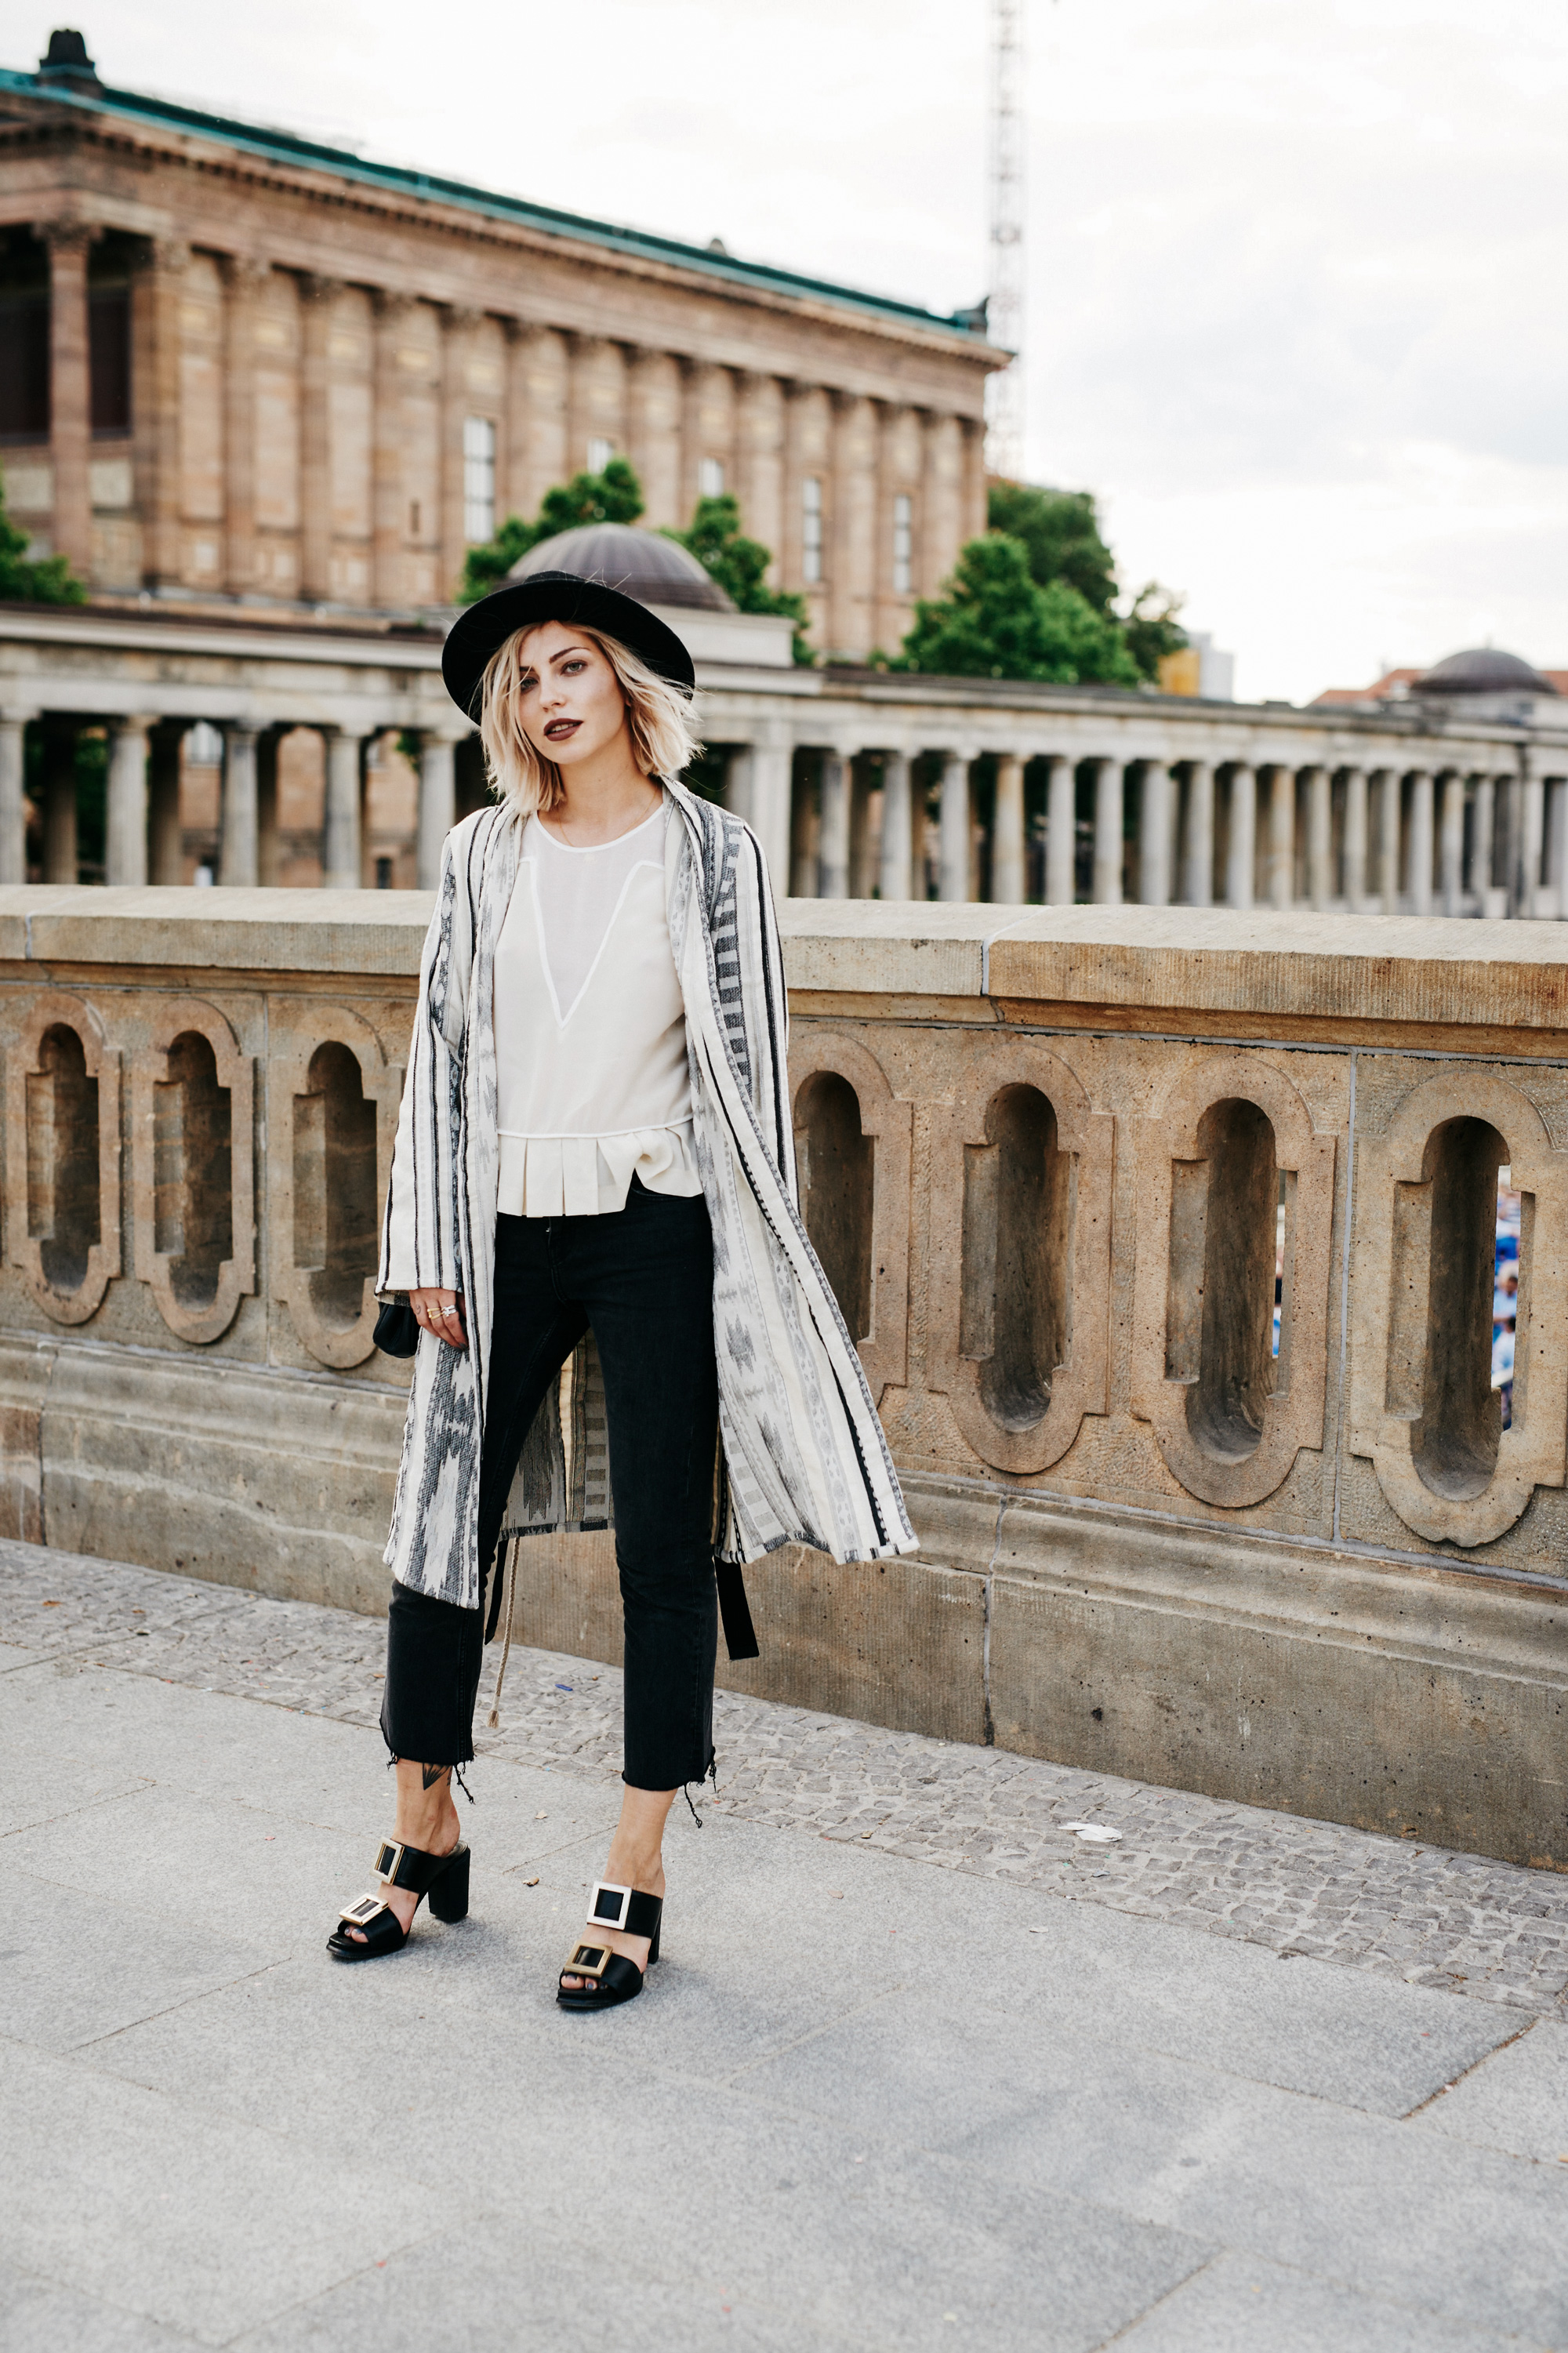 style: ethno, boho edgy, feminine | taken in Berlin | outfit: coat from drykorn, nude silk top from Sandro